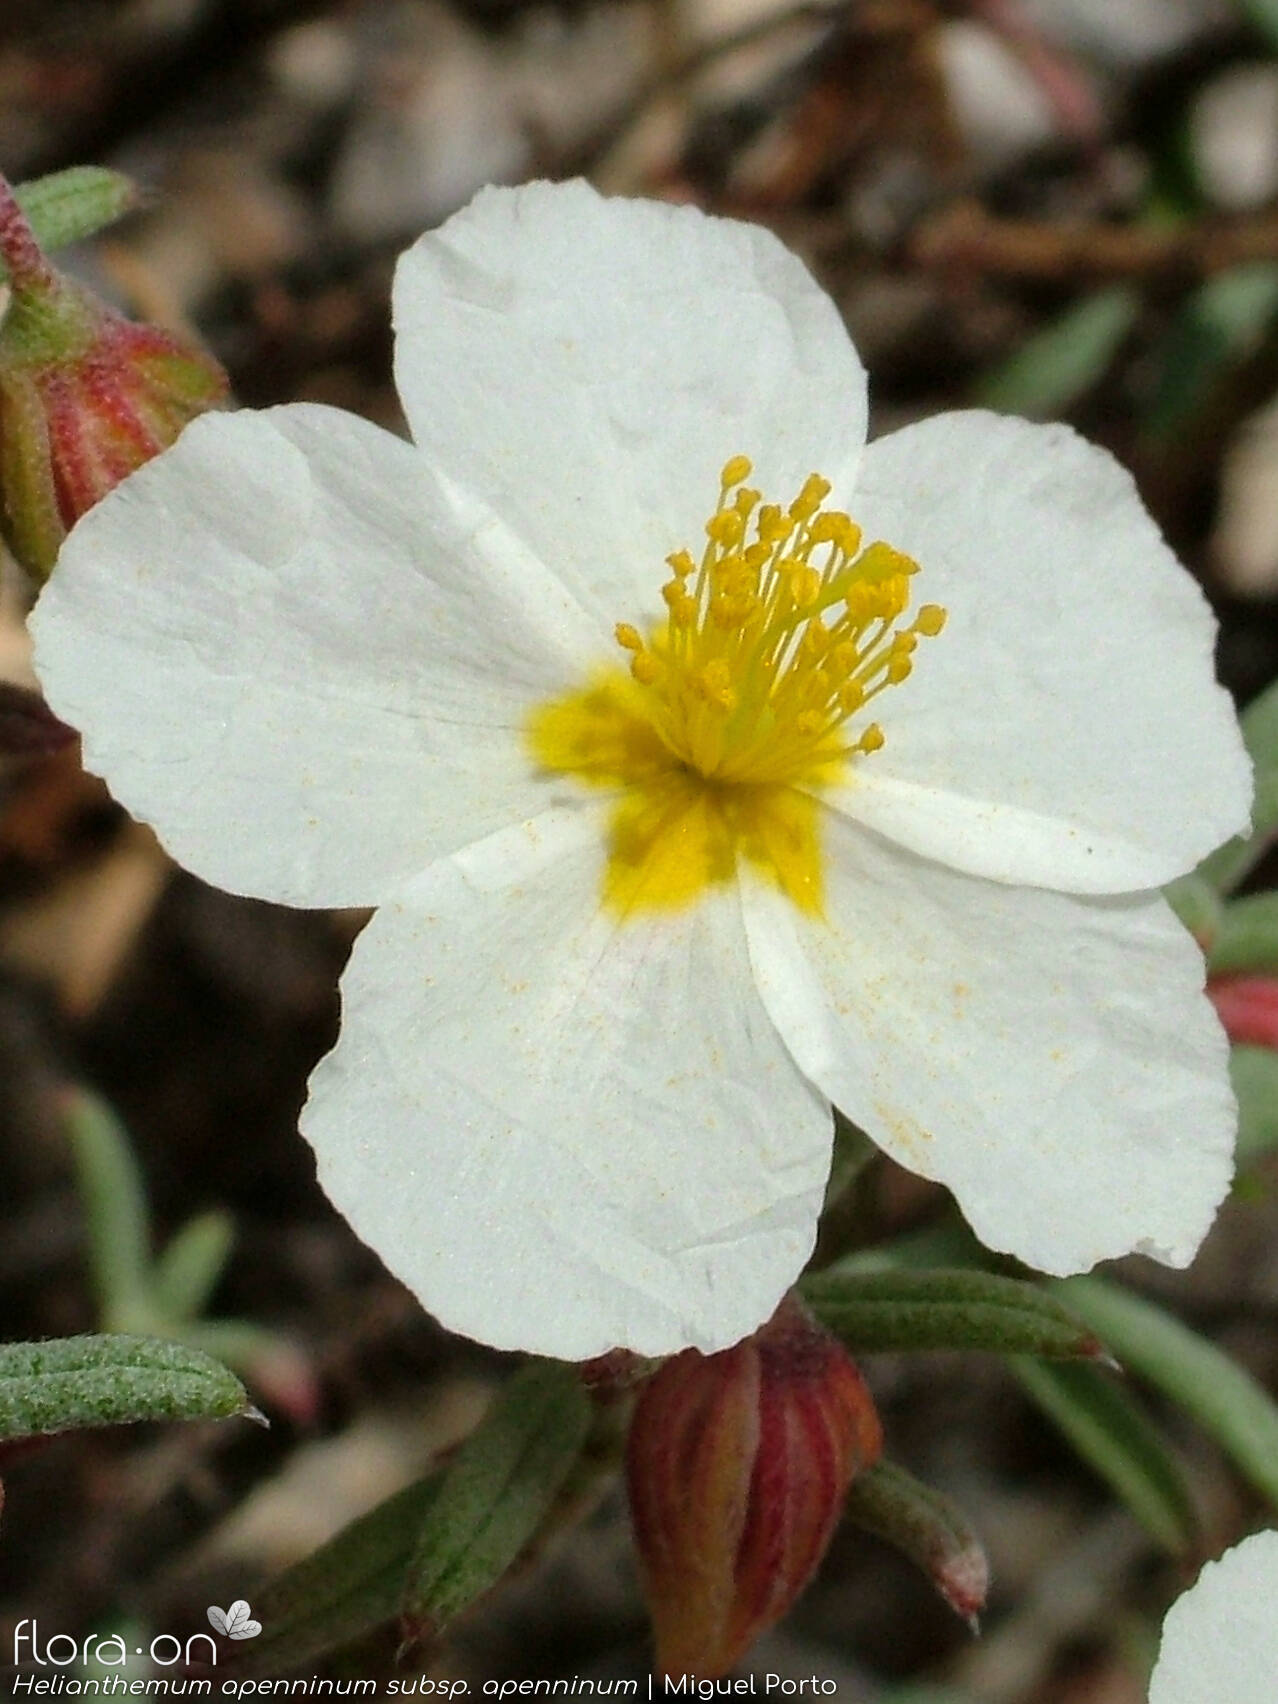 Helianthemum apenninum apenninum - Flor (close-up) | Miguel Porto; CC BY-NC 4.0